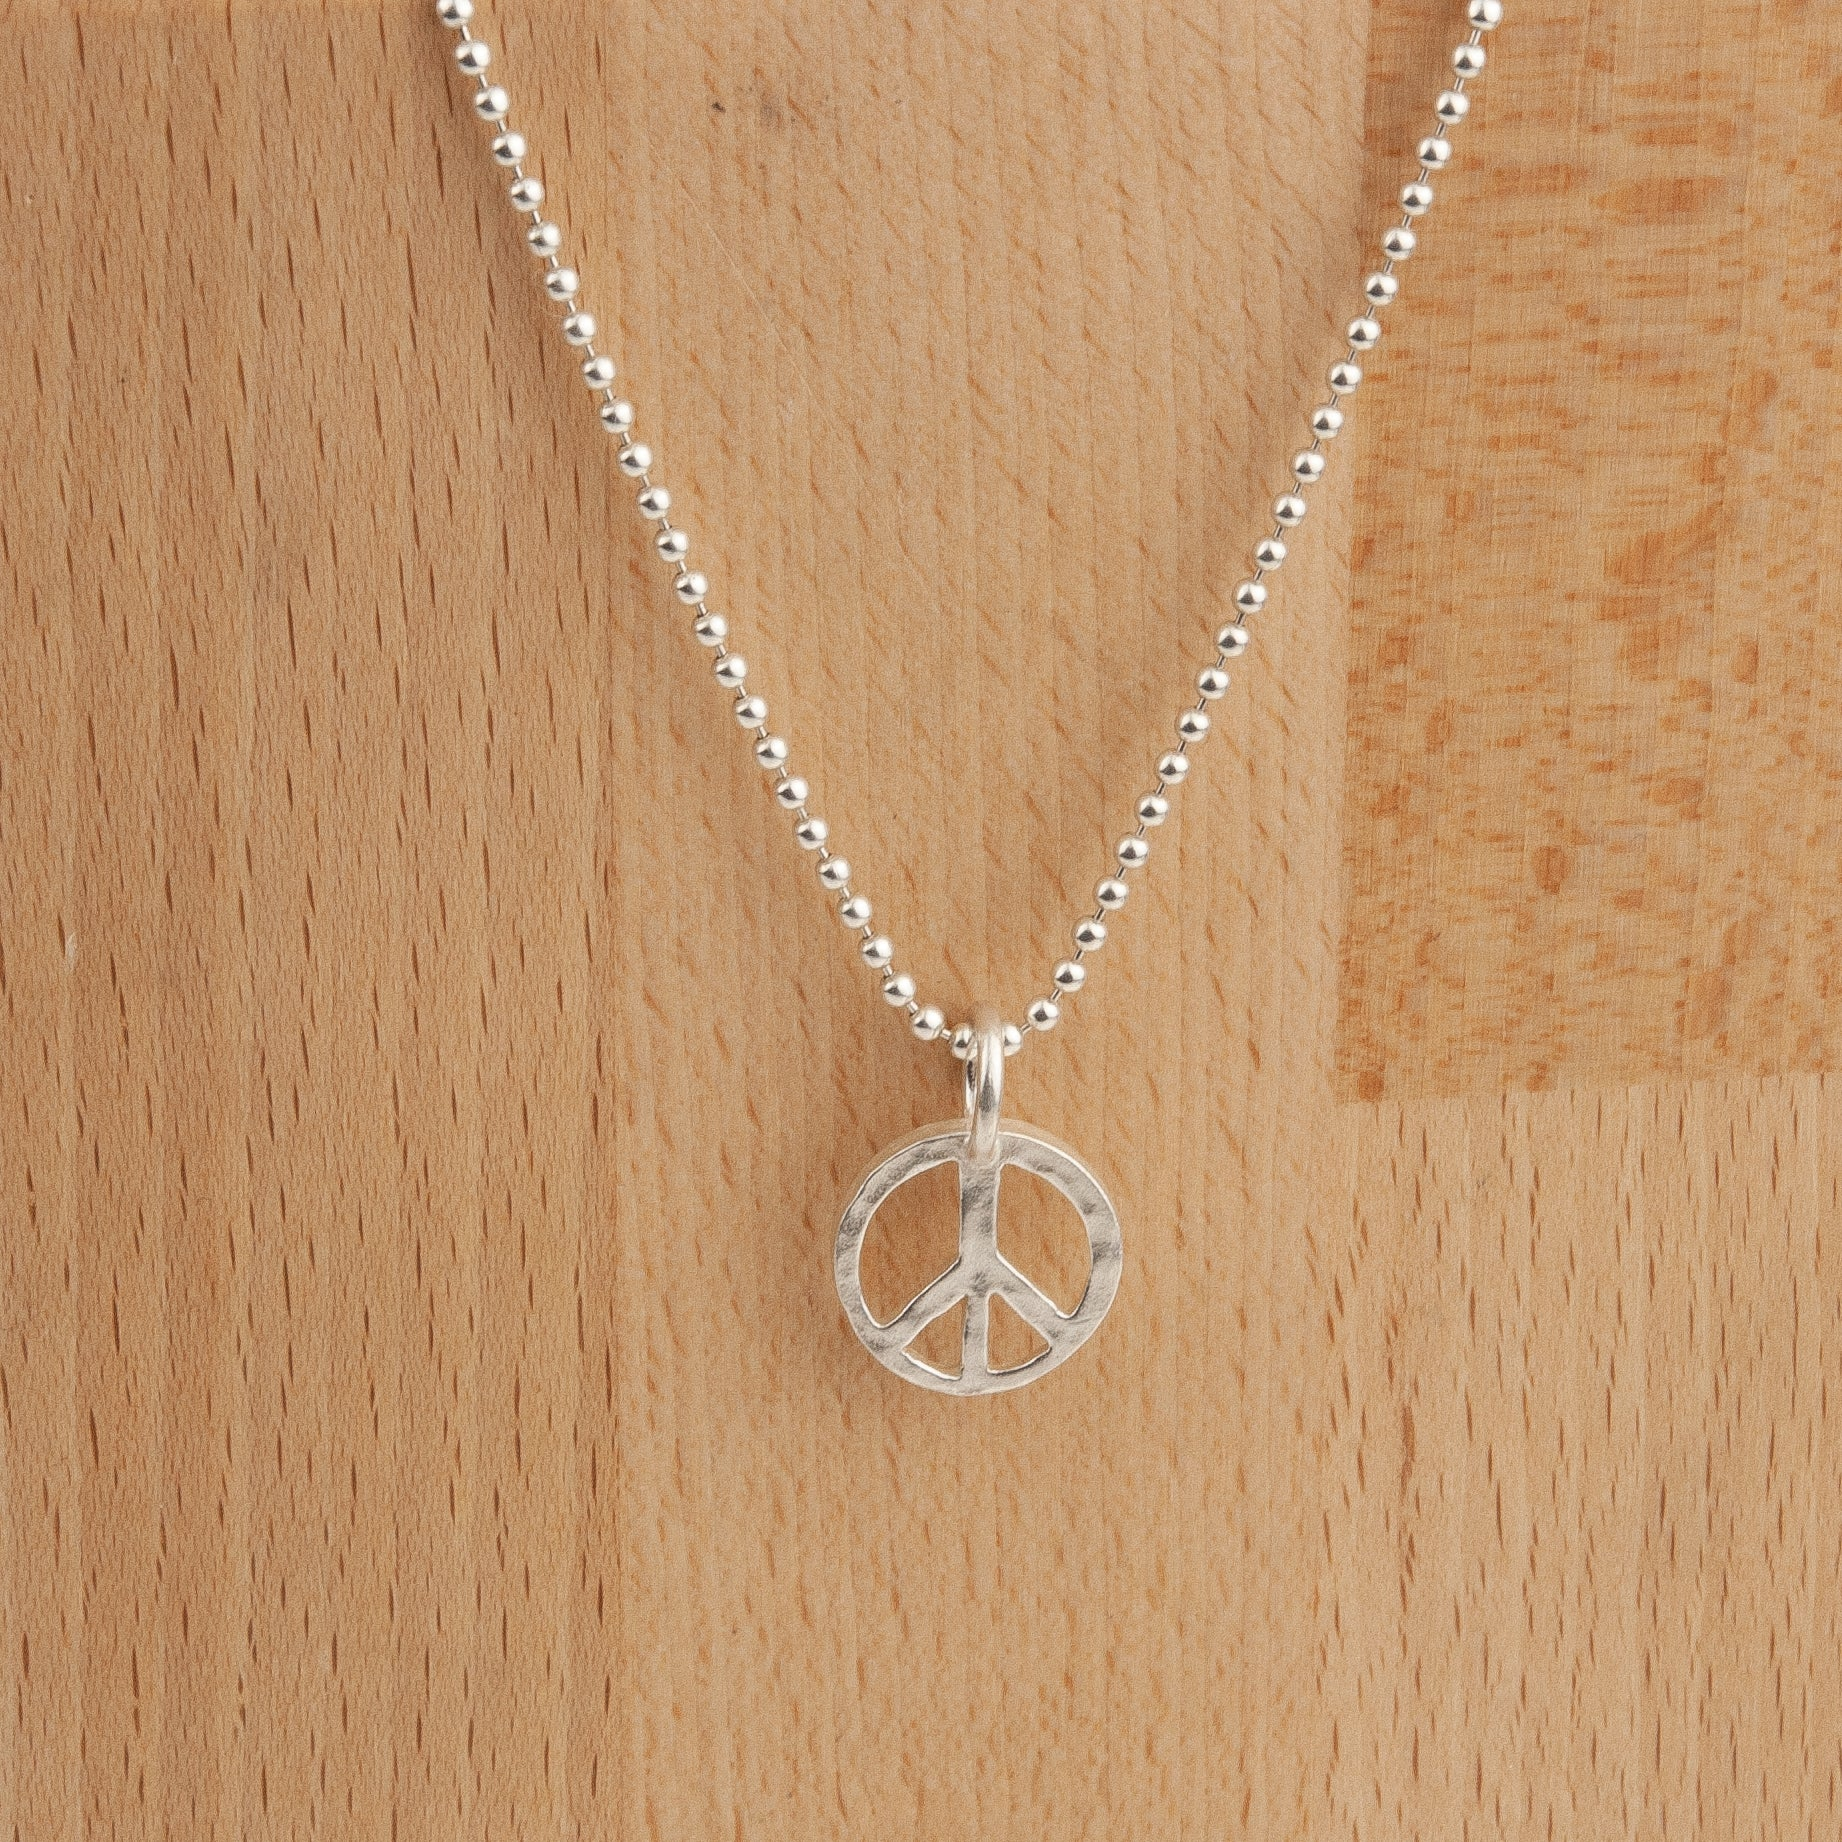 Belle & Bee Sterling Silver Ball Chain Necklace with Chunky Peace Sign Charm